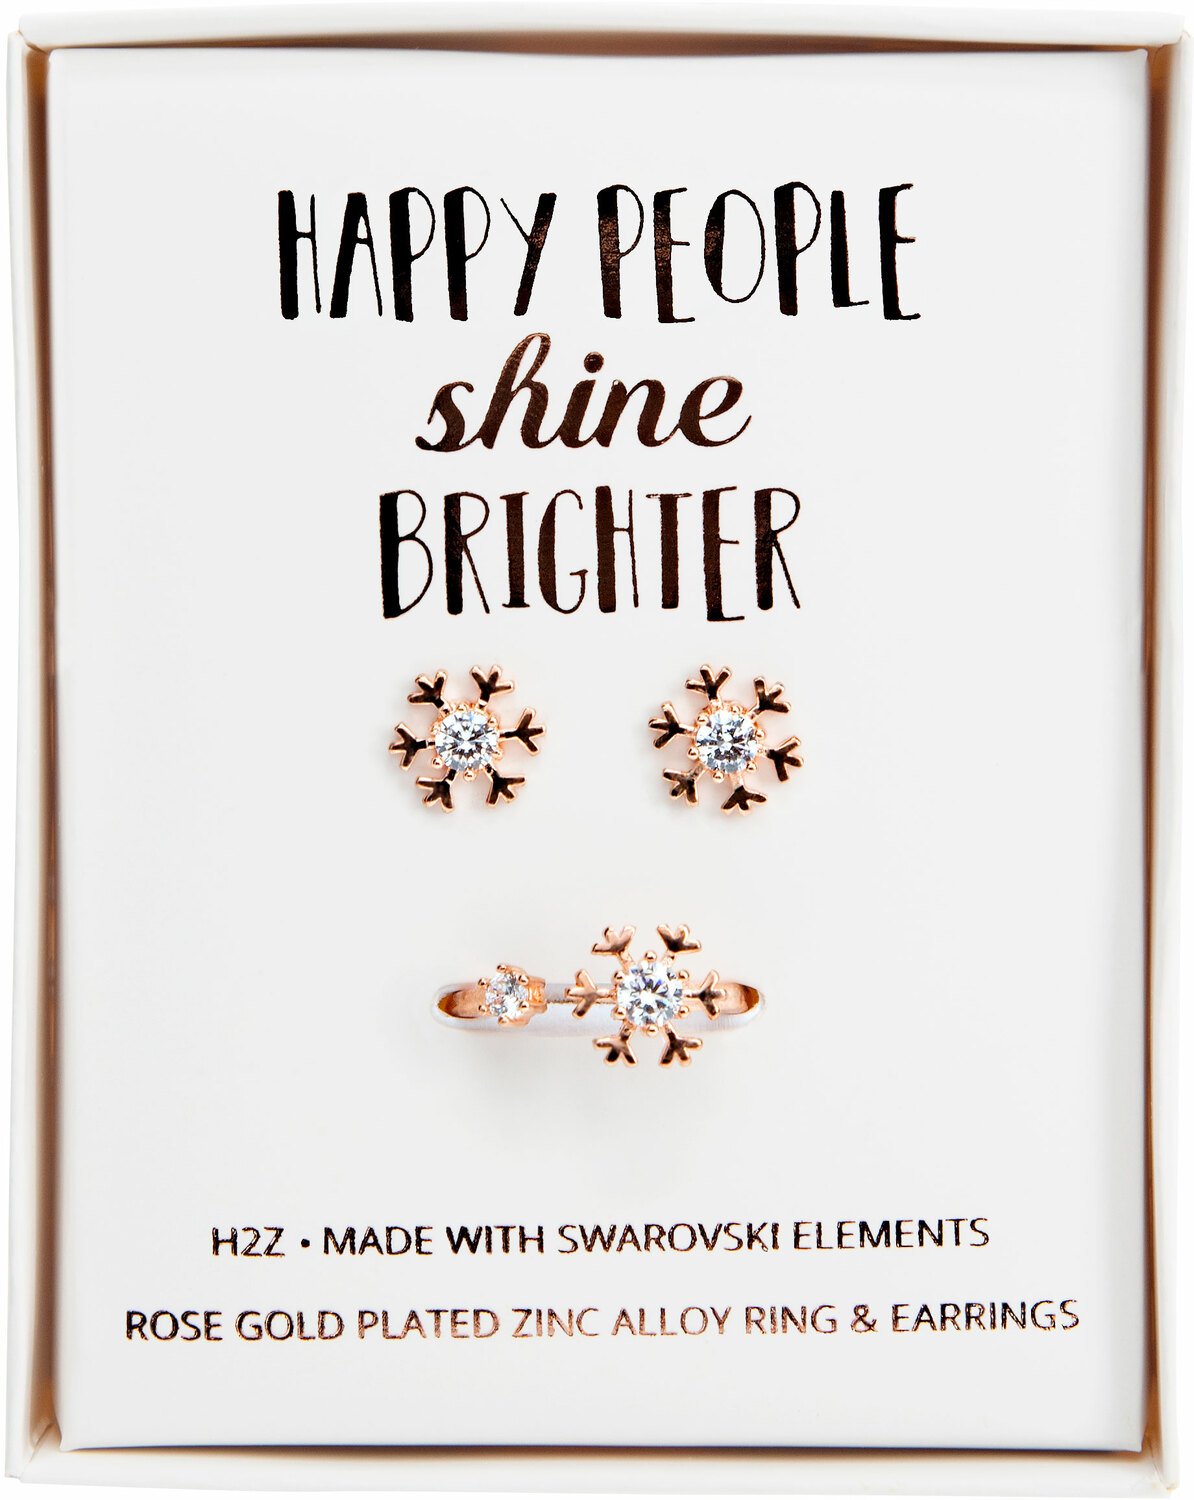 Crystal Snowflake in Rose Gold by H2Z Made with Swarovski Elements - Crystal Snowflake in Rose Gold - 1 CM Swarovski Crystal Stud Earrings & Adjustable Ring